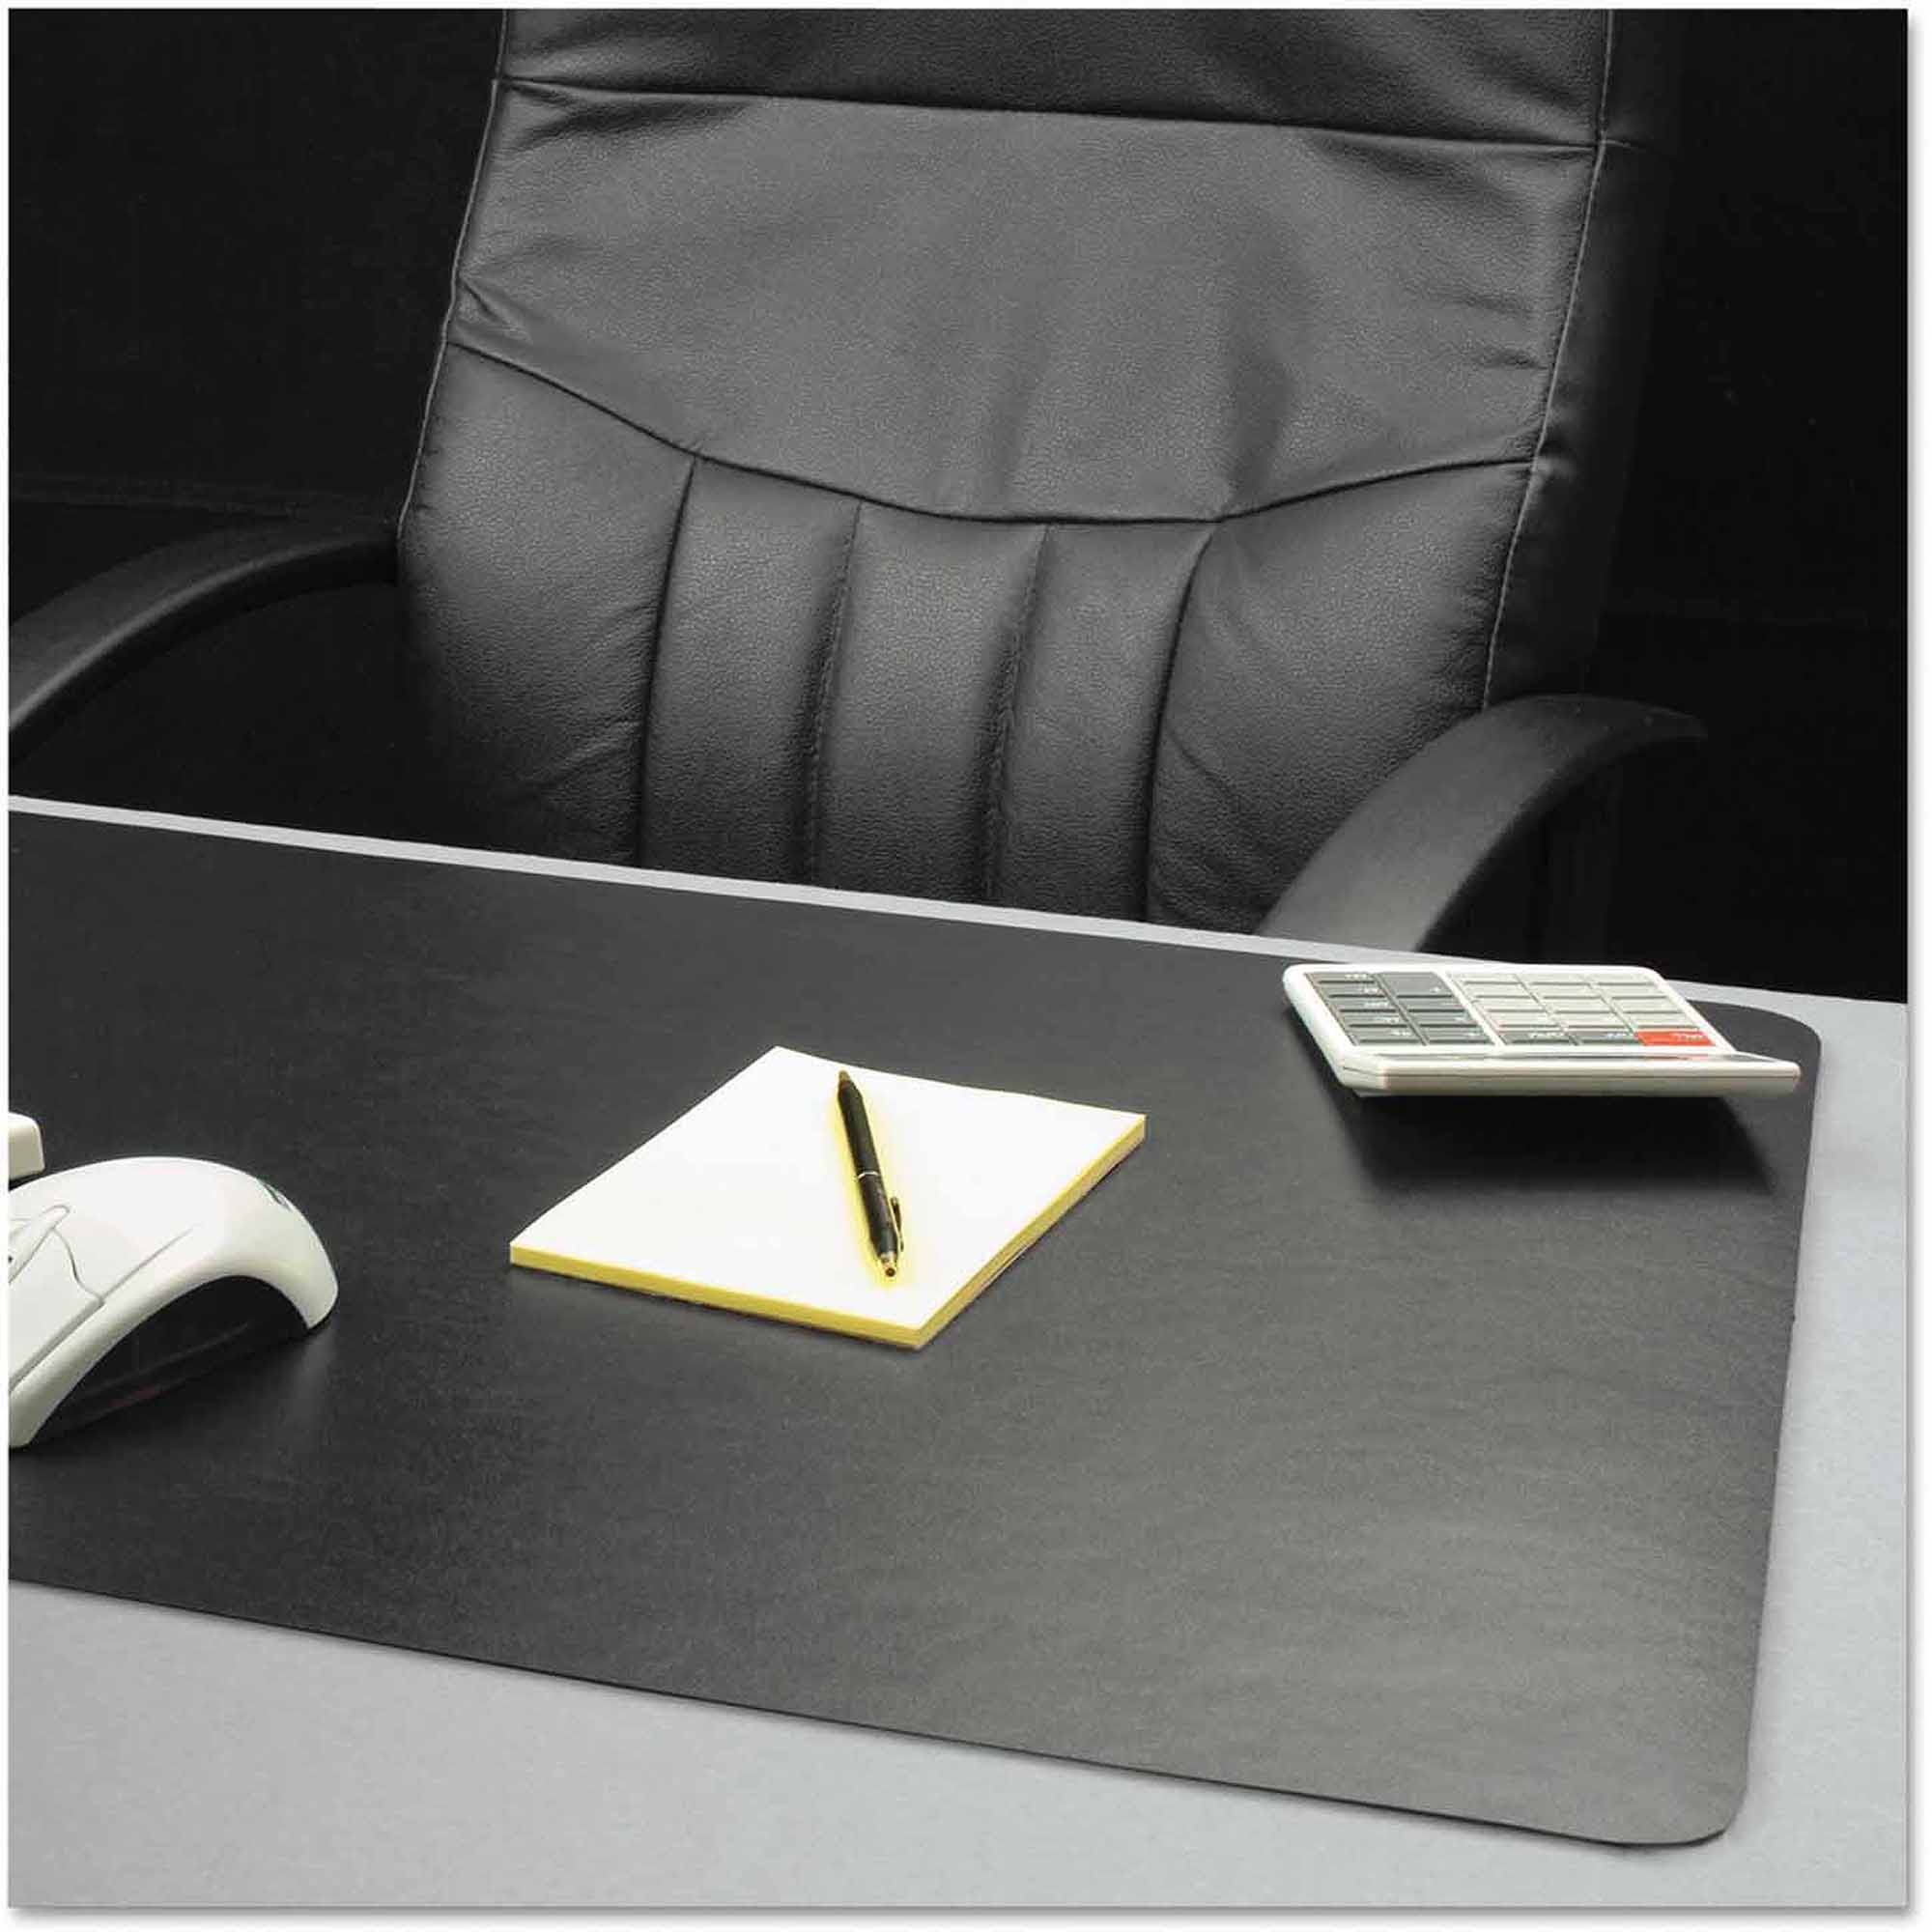 "ES Robbins Natural Origins Desk Pad, 38"" x 24"", Matte, Black"